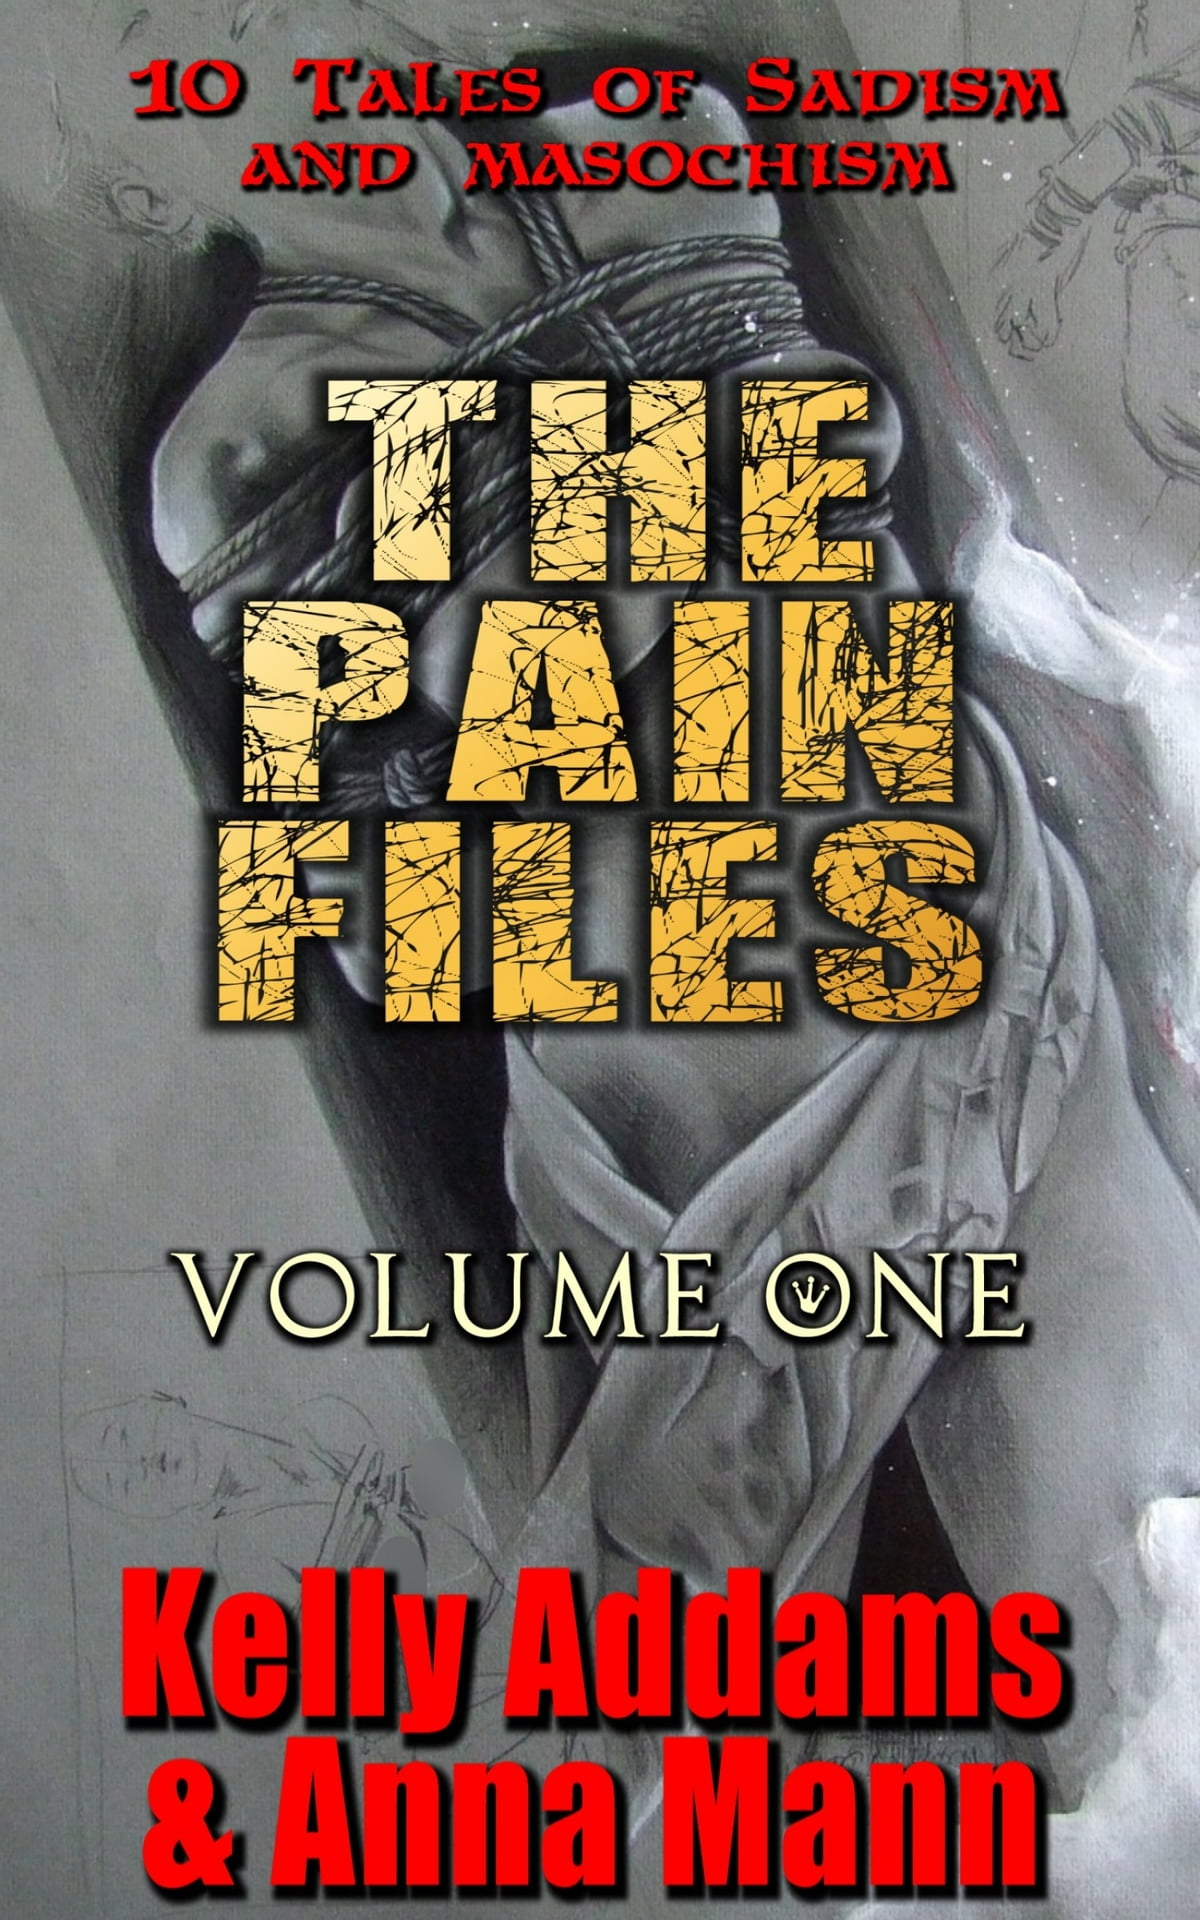 The Pain Files - Volume One eBook by Kelly Addams